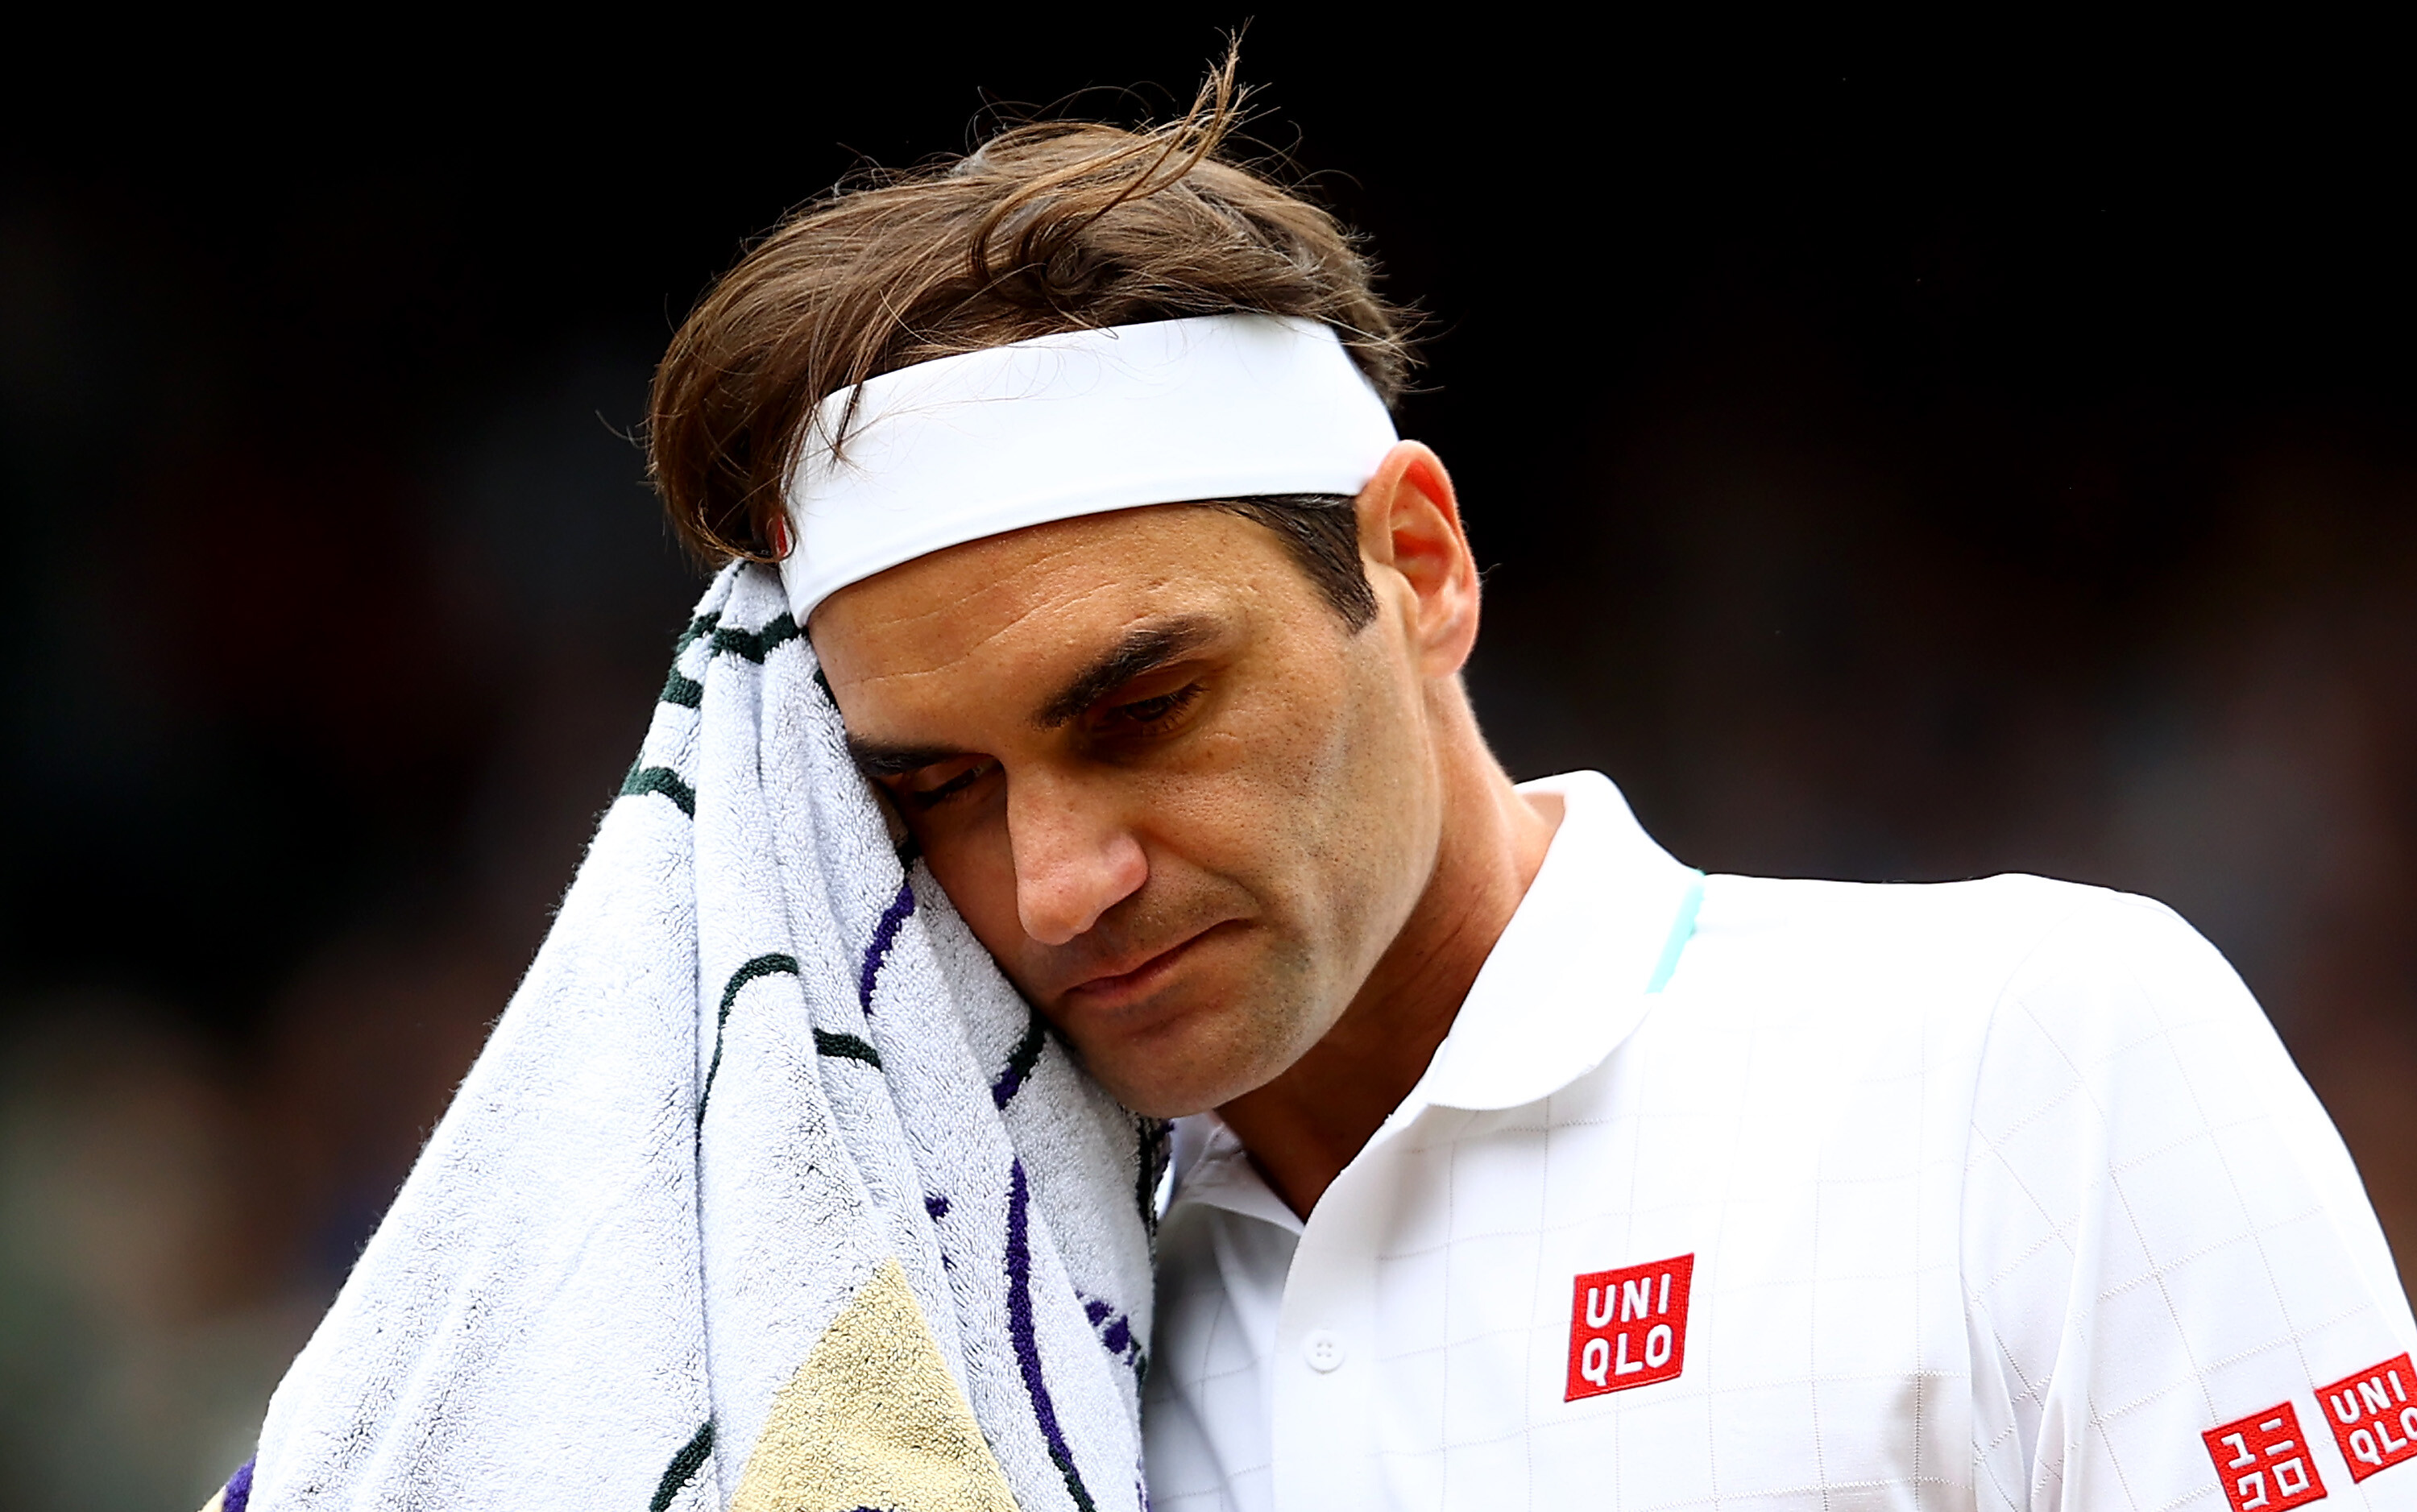 Tennis great Roger Federer pulls out of Olympics, citing knee injury